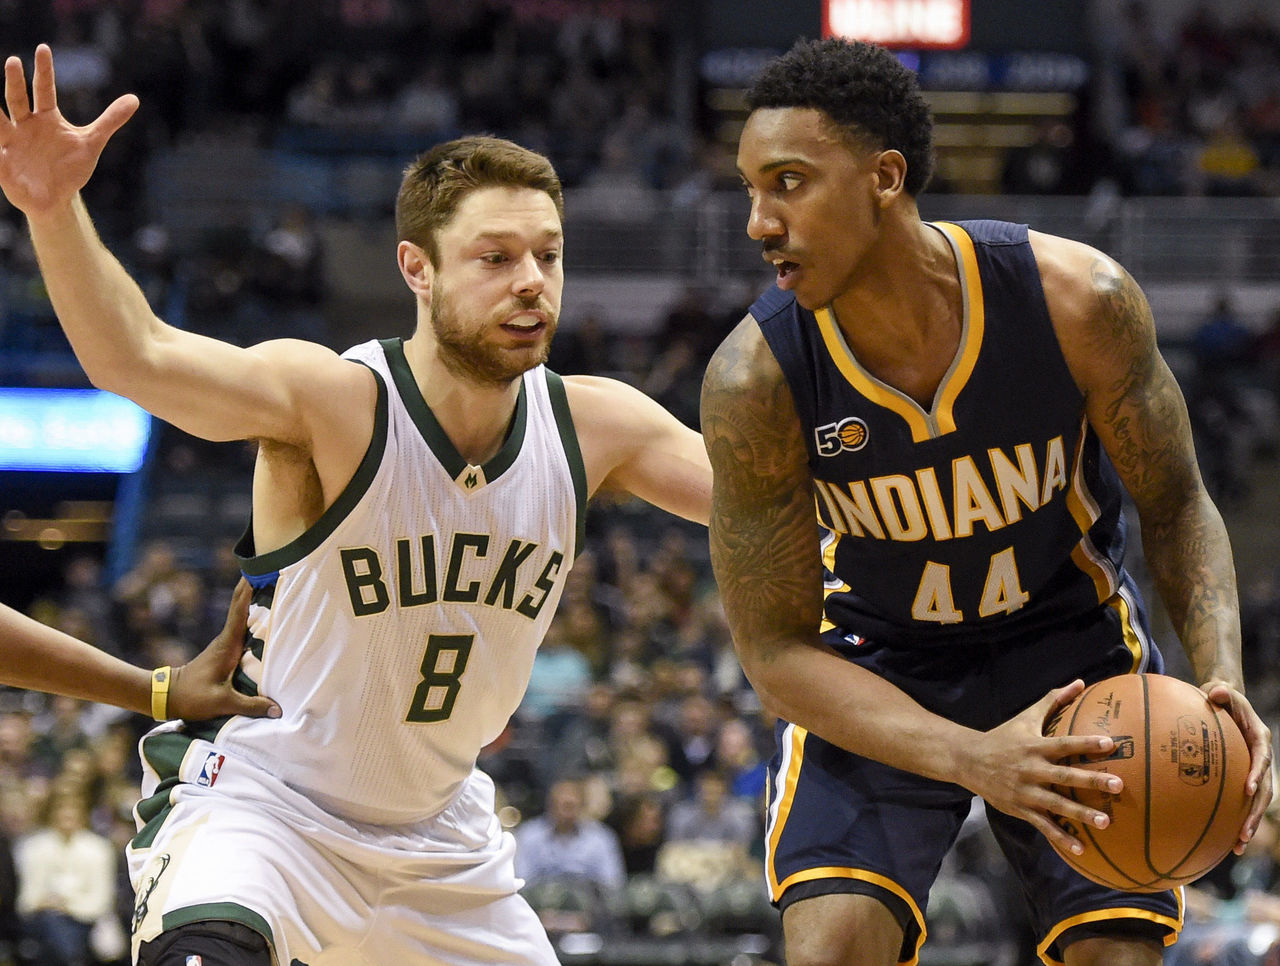 Cropped 2017 03 11t013140z 1066591808 nocid rtrmadp 3 nba indiana pacers at milwaukee bucks